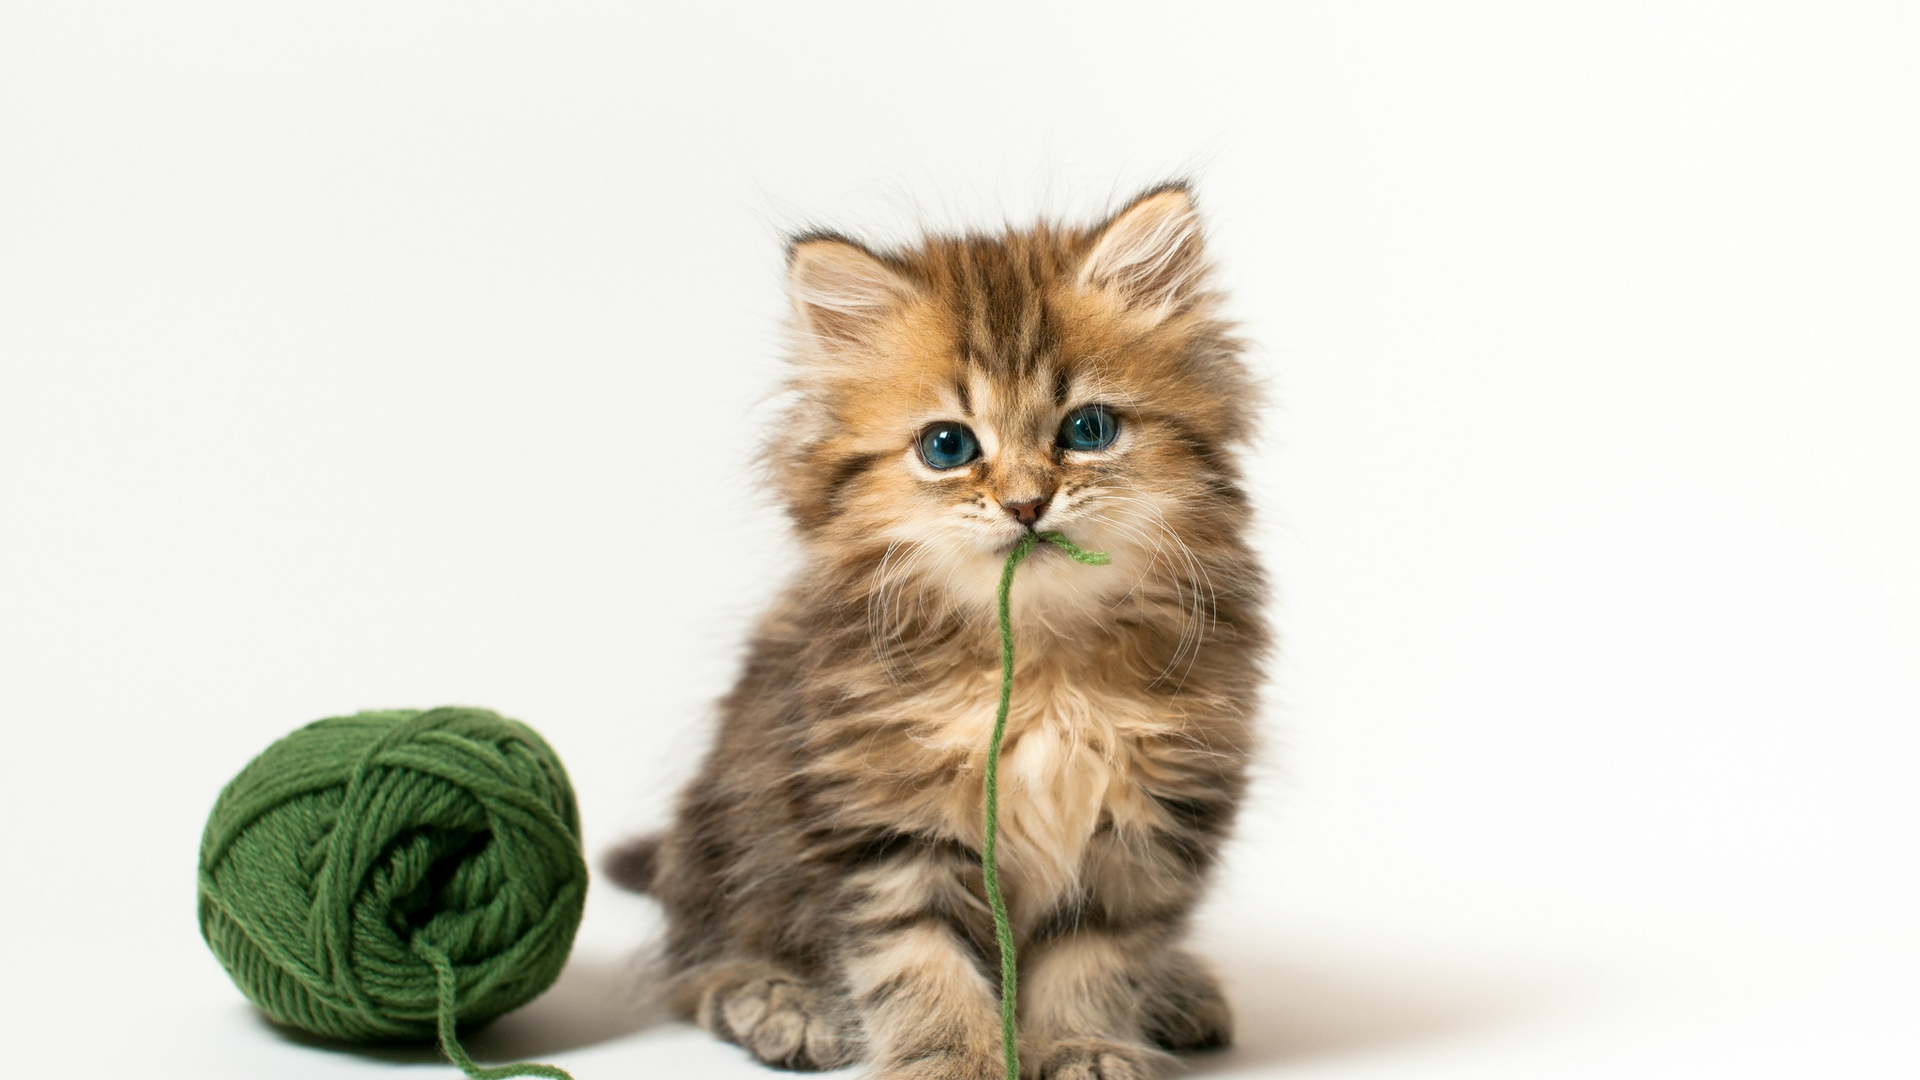 Really Cute Backgrounds Desktop Image 1920x1080